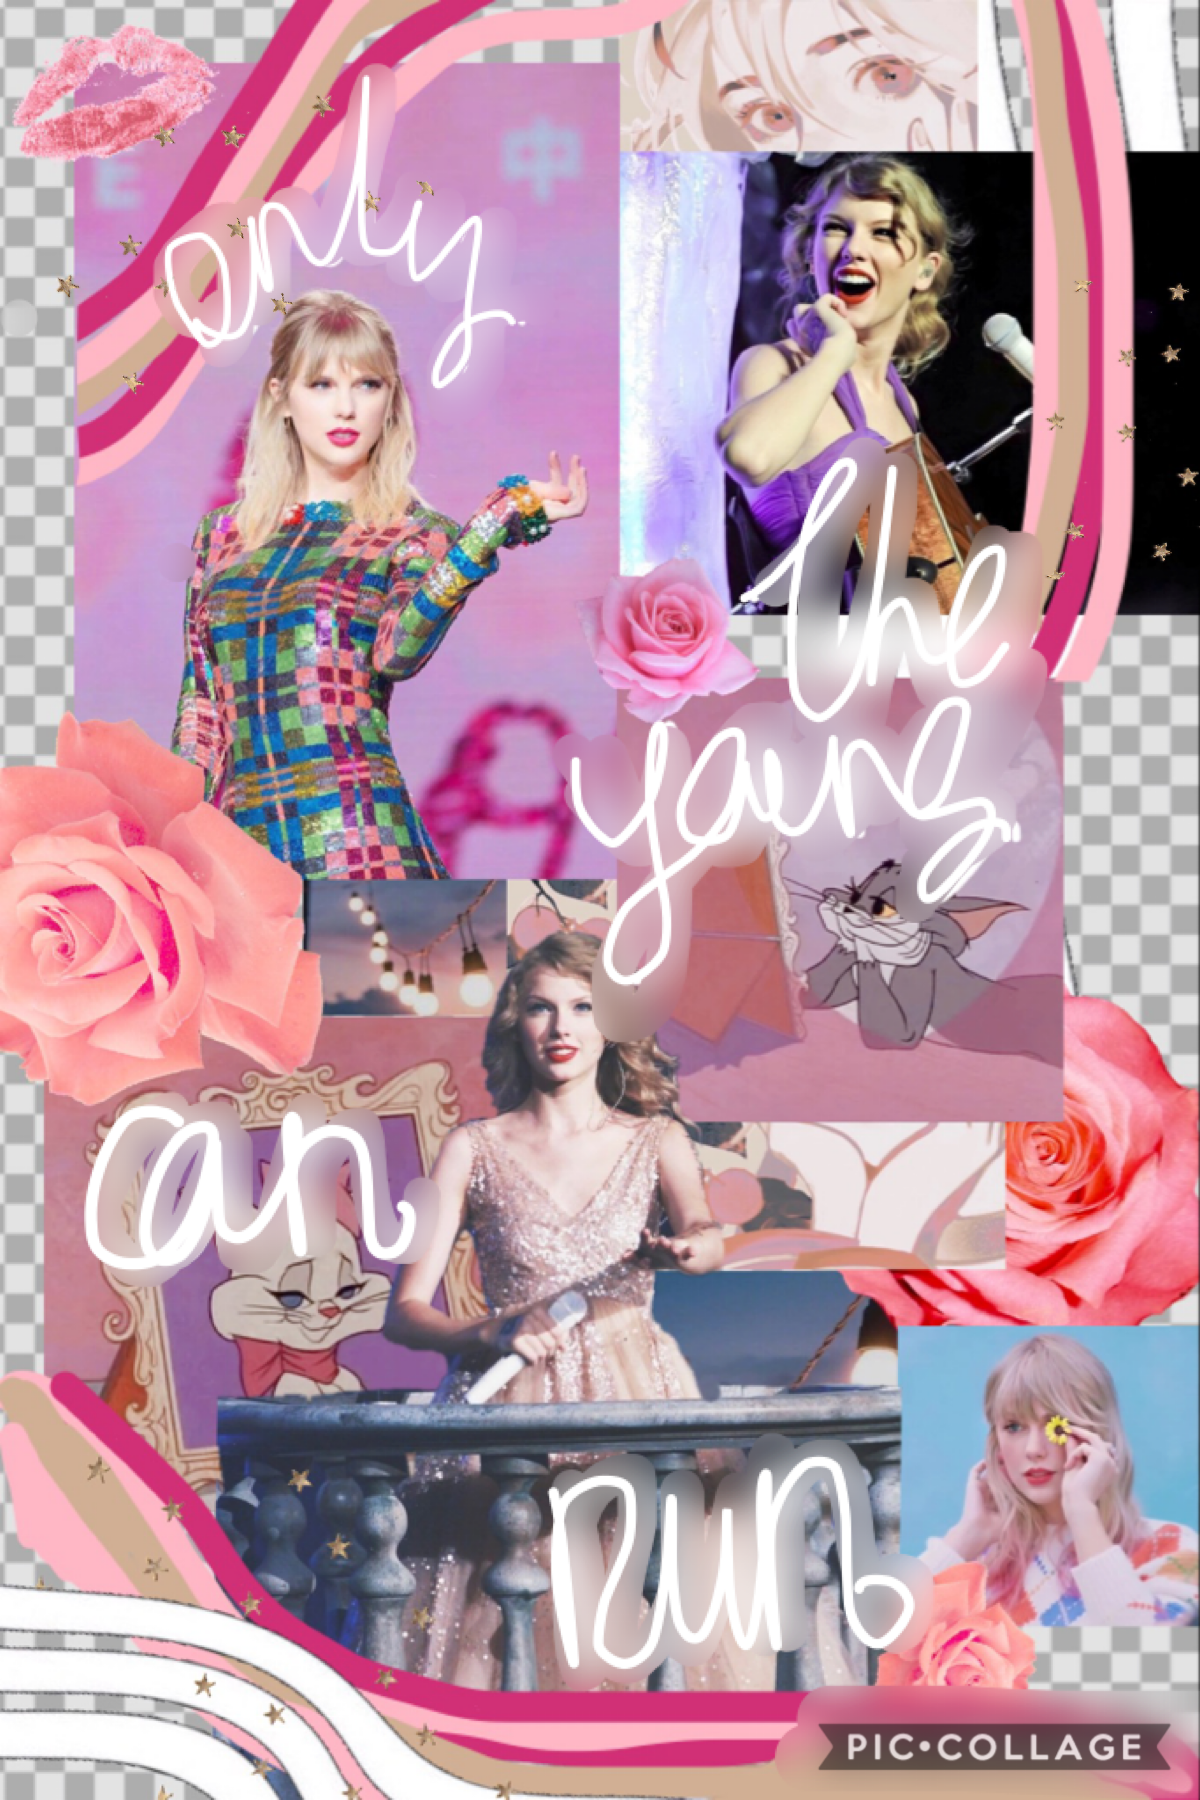 tappity tap 💓  aghhh Taylor 🥺🥰 omg I've been planning this collage for so long bc I needed smth about herrr 💗  《Miss Americana》 waTch it pleaaaase 🤭 and ahhh 💕'Only The Young' 💫 I am addicted 😂